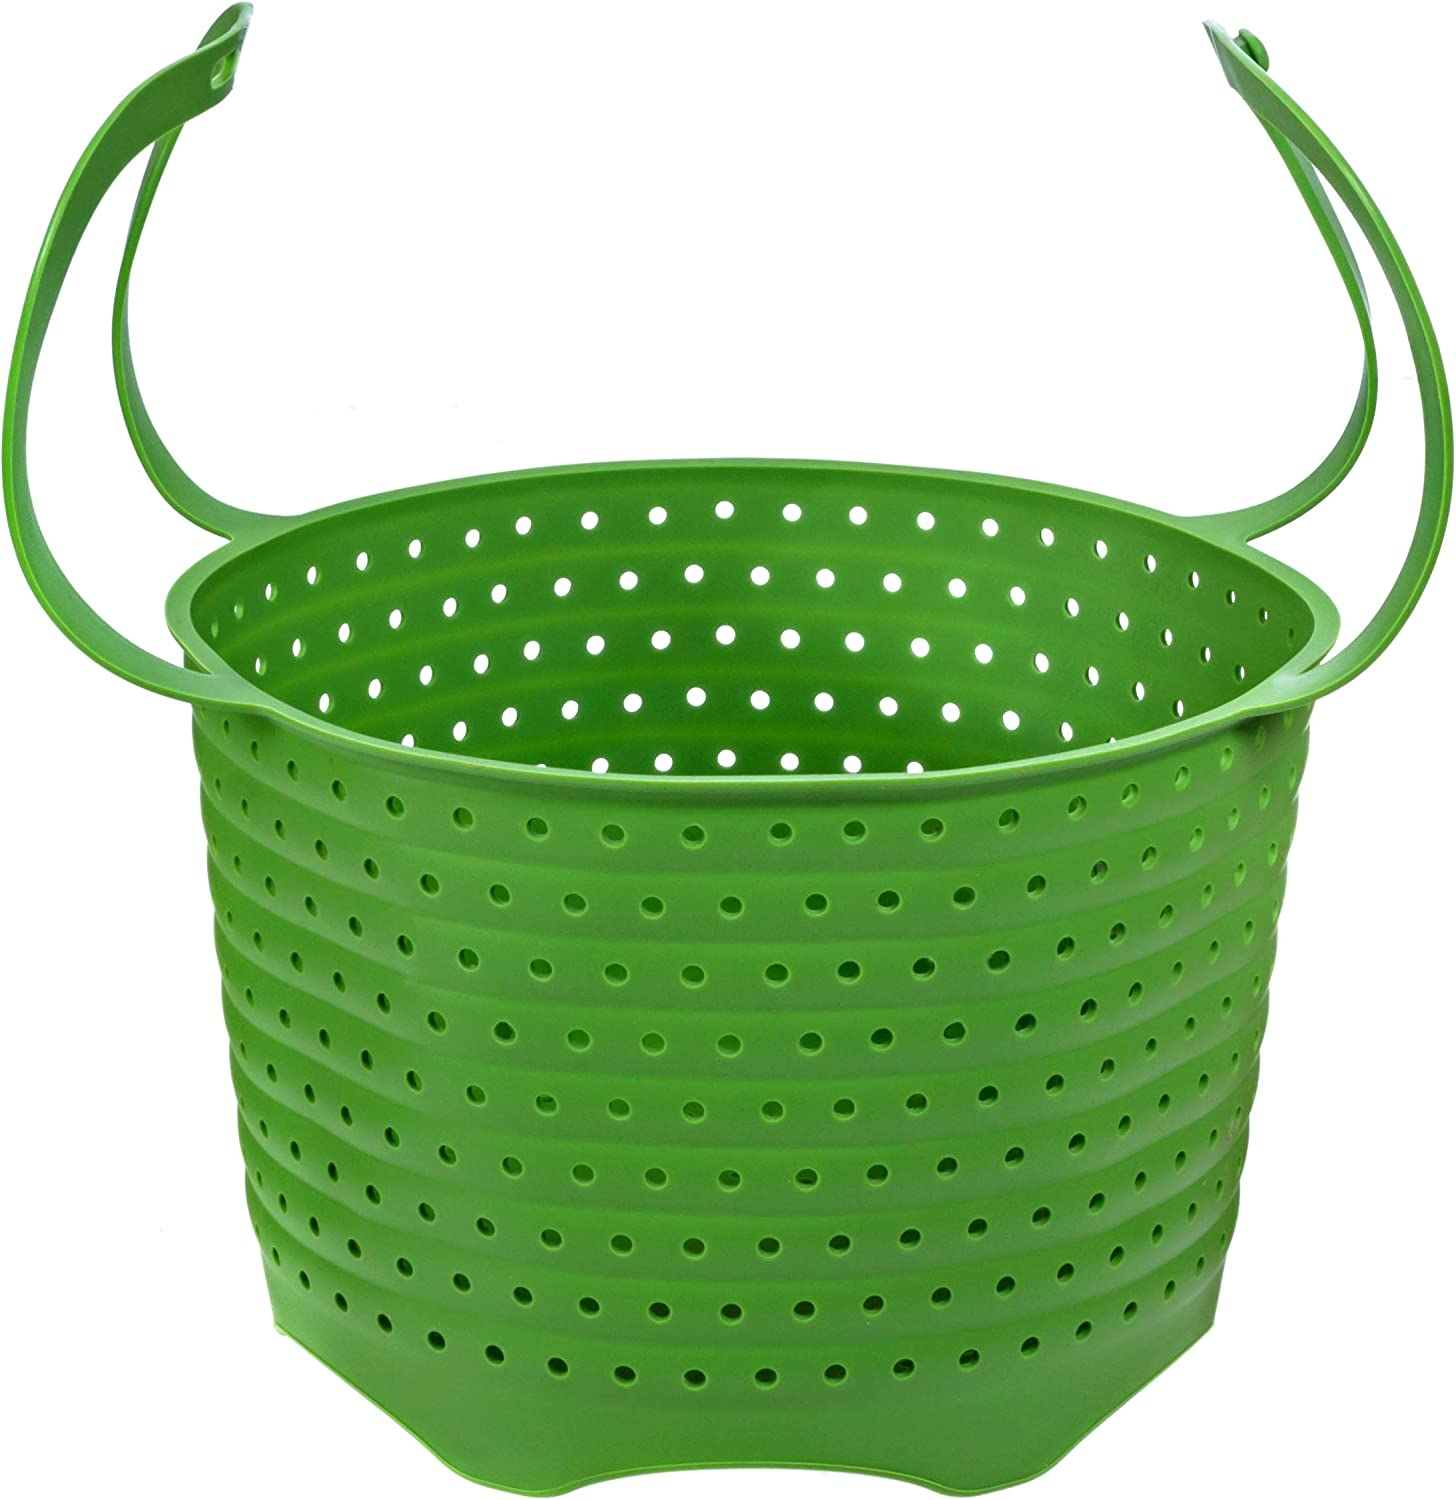 Silicone Steamer Basket | Foldable, Space-Saving | Fits 6,8 Qt Instant Pot, Ninja Foodi and Other Pressure Cookers